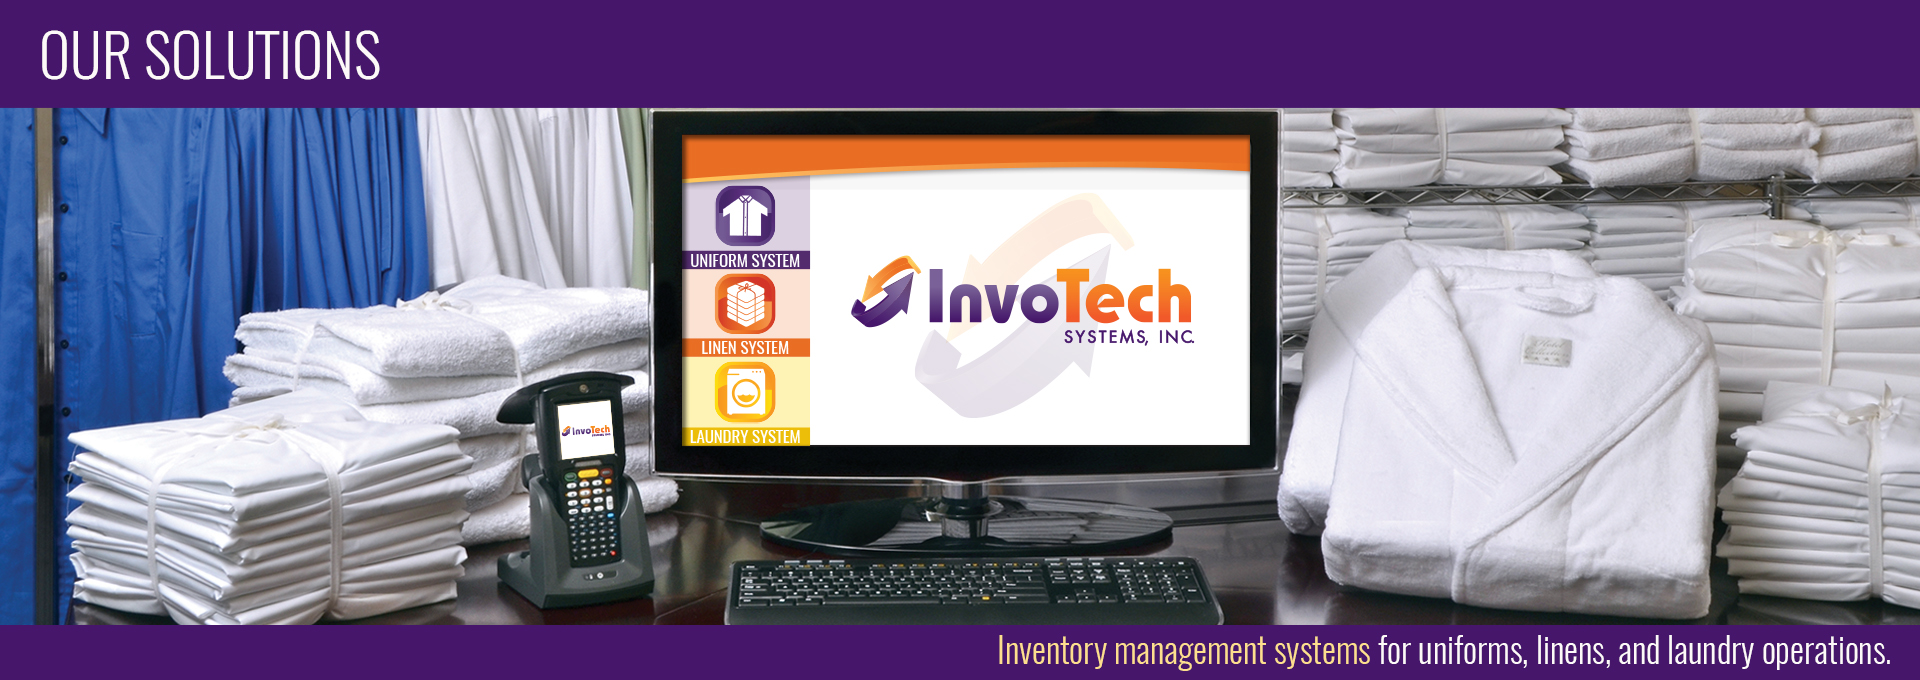 Software Management Solutions Invotech Systems